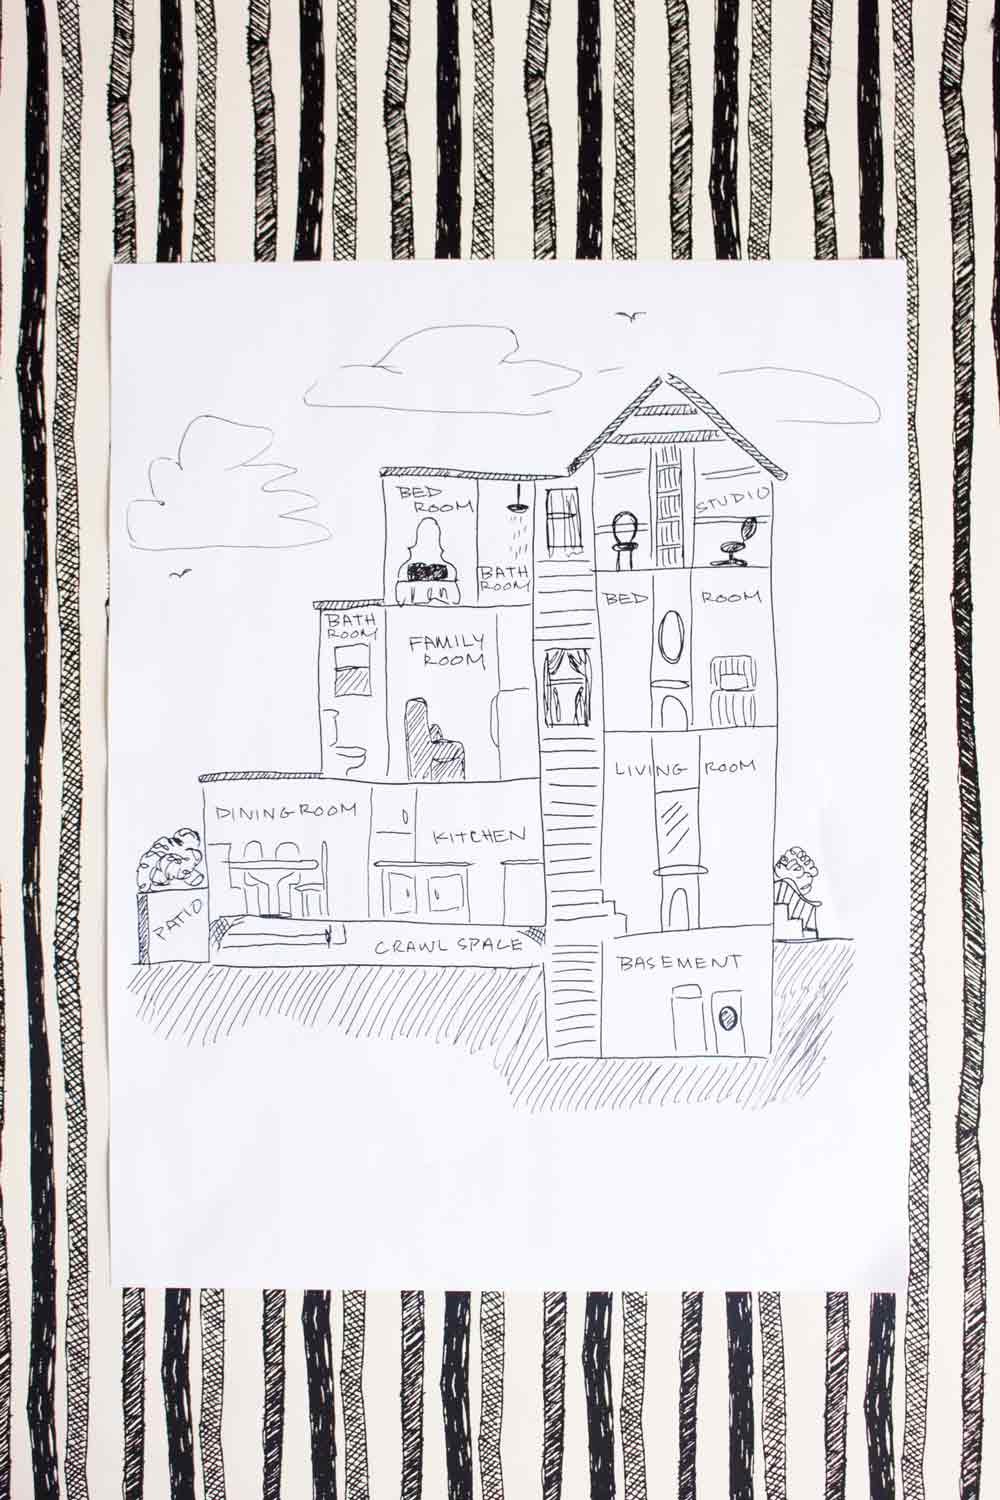 Storytelling Through Drawing in a Philadelphia Row Home, on Design*Sponge